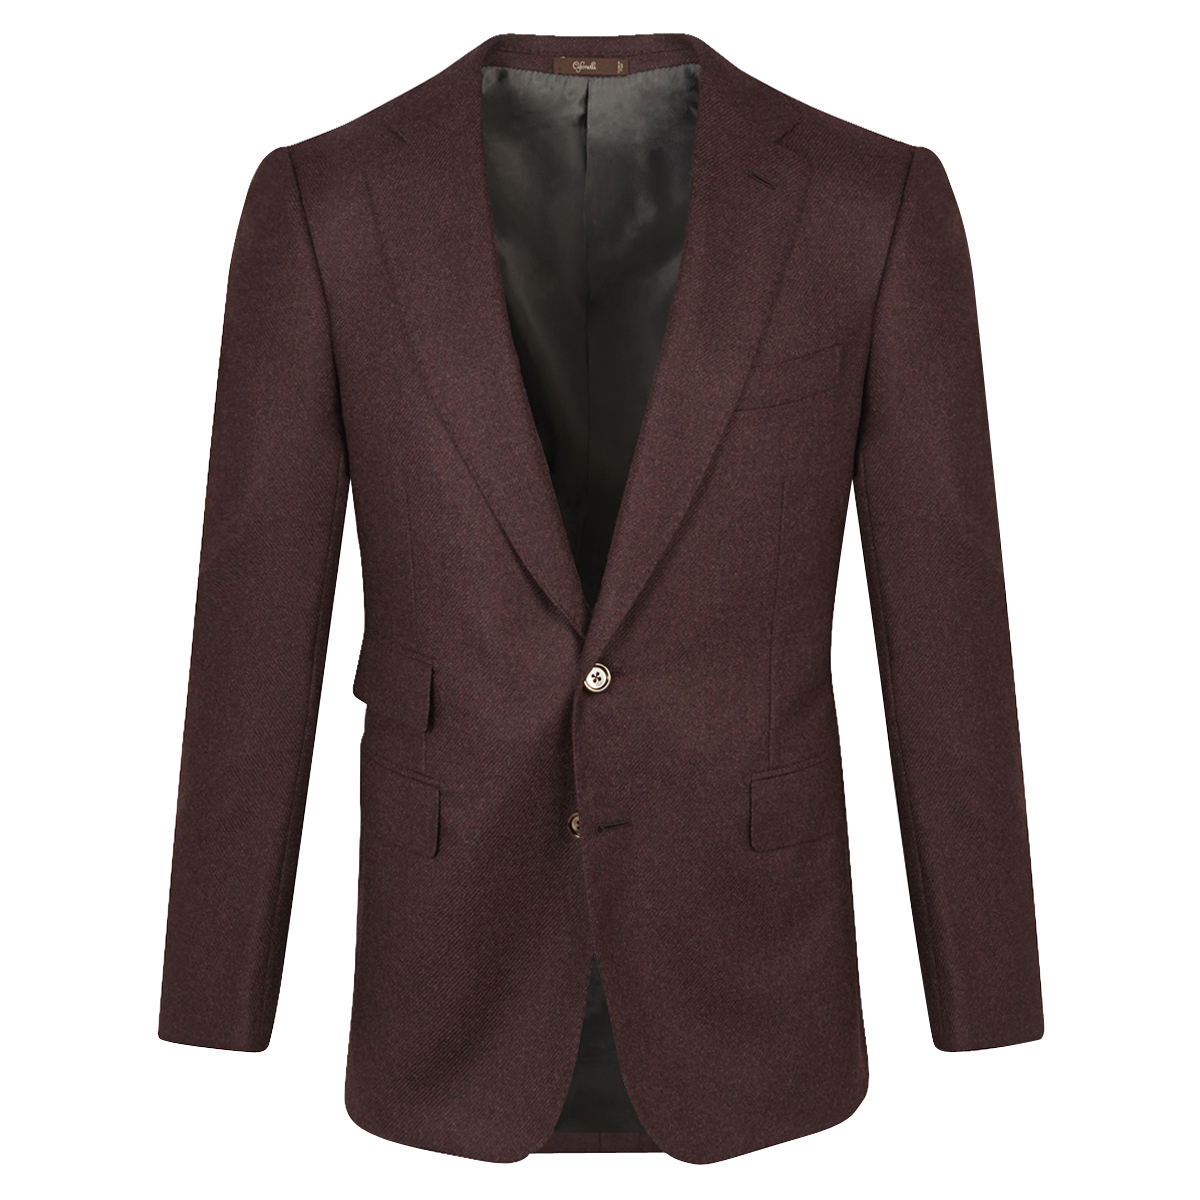 Burgundy Cashmere Single-Breasted Jacket